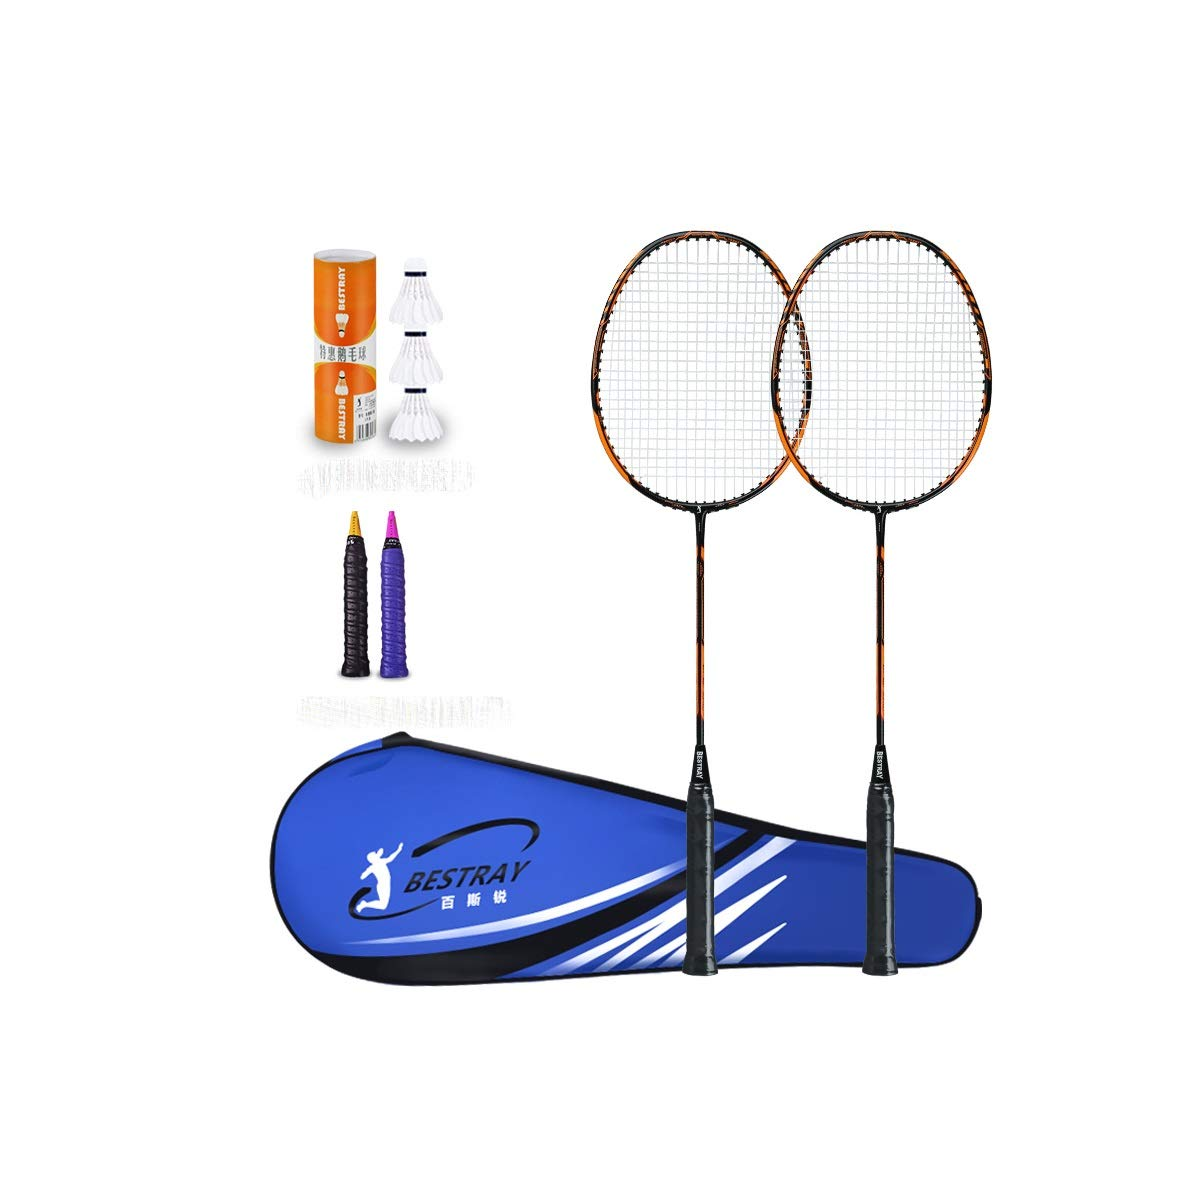 A2 Shengshihuizhong Badminton Racket, Single and Double Shot, Beginner Family Ultra Light, Fitness Amateur Primary Carbon 2, A Variety of colors ejercicio,